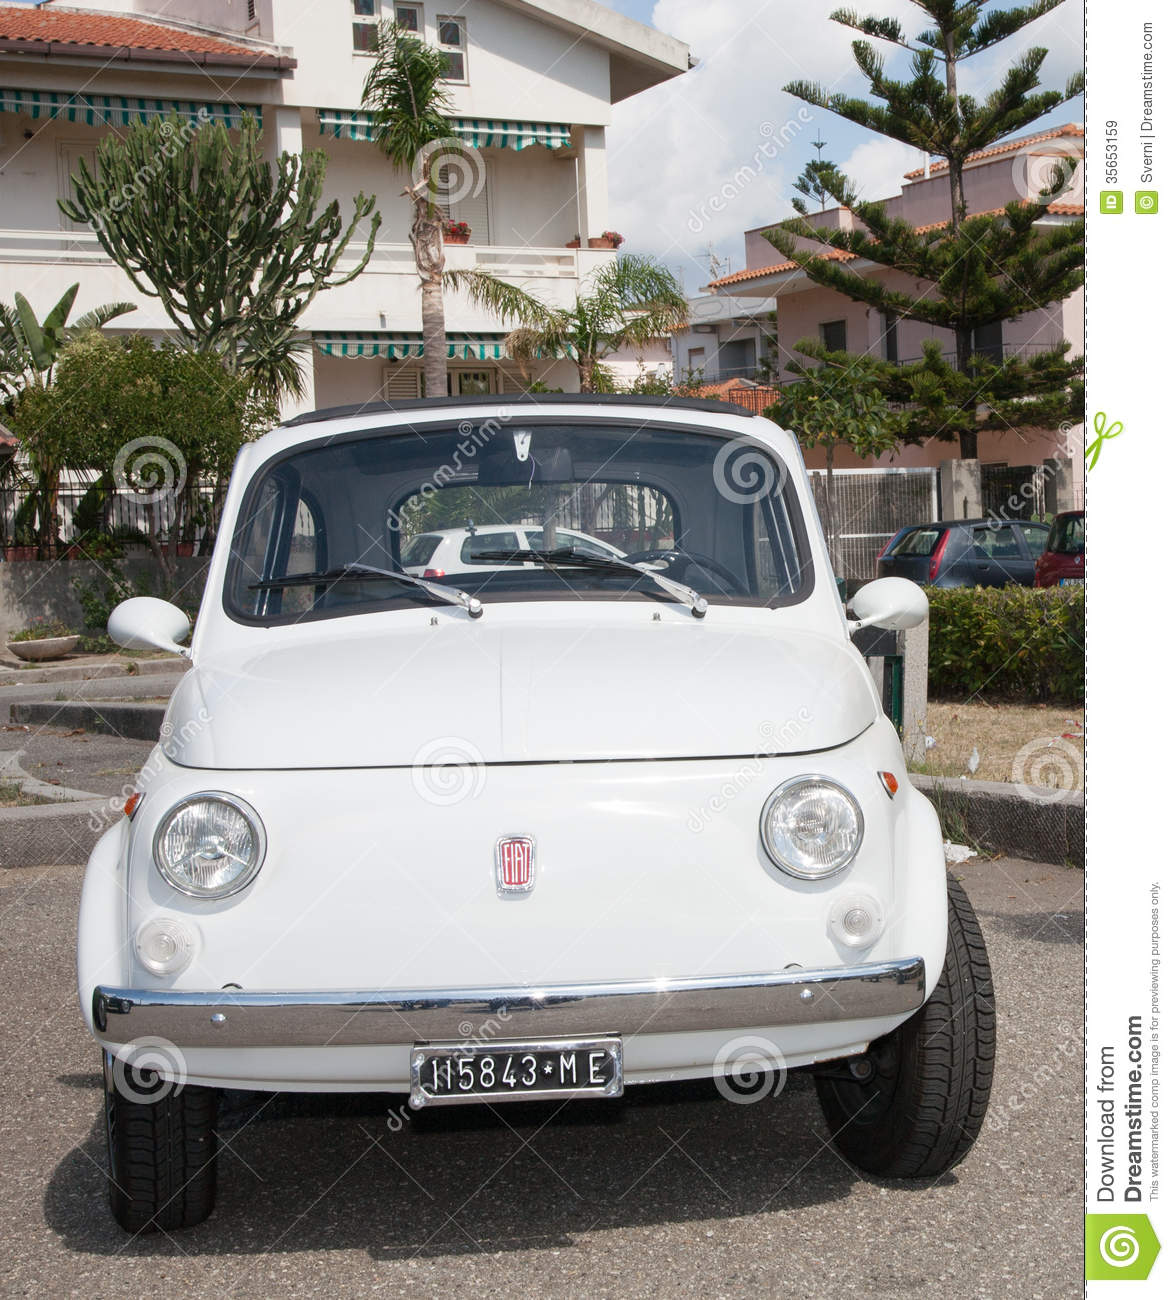 Vintage Car Fiat 500 Editorial Stock Image.